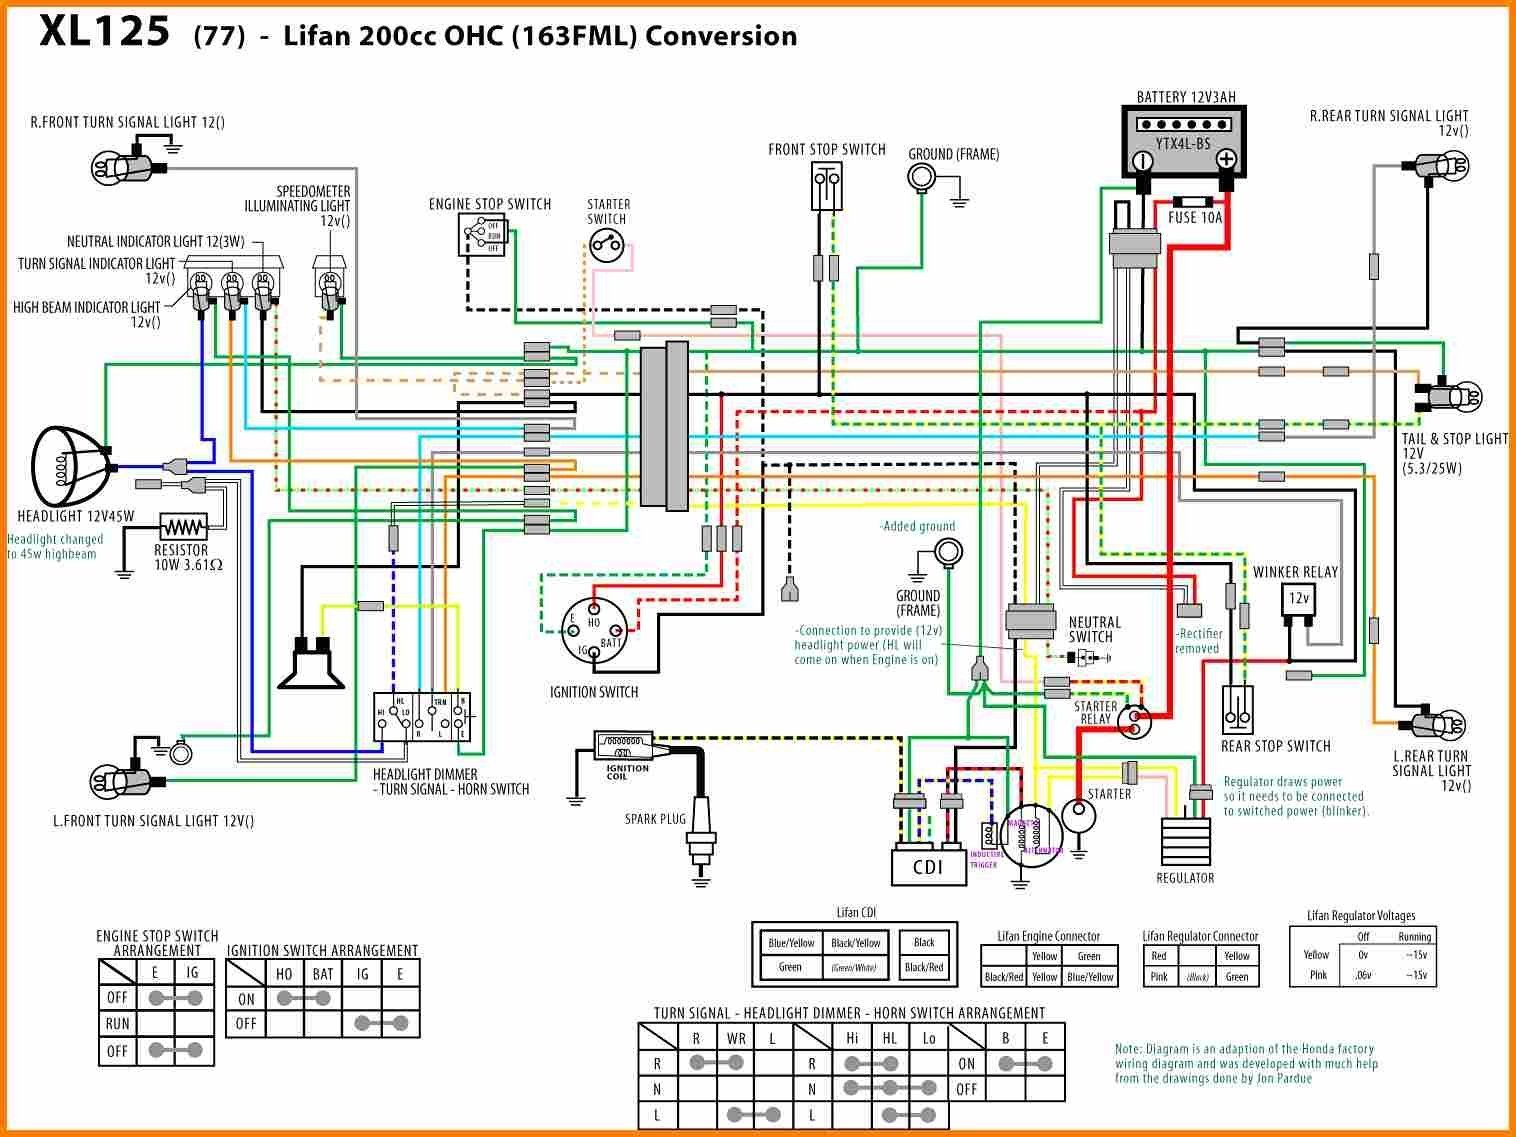 yamaha 125 dirt bike engine diagram - wiring diagram hill-teta-a -  hill-teta-a.disnar.it  disnar.it